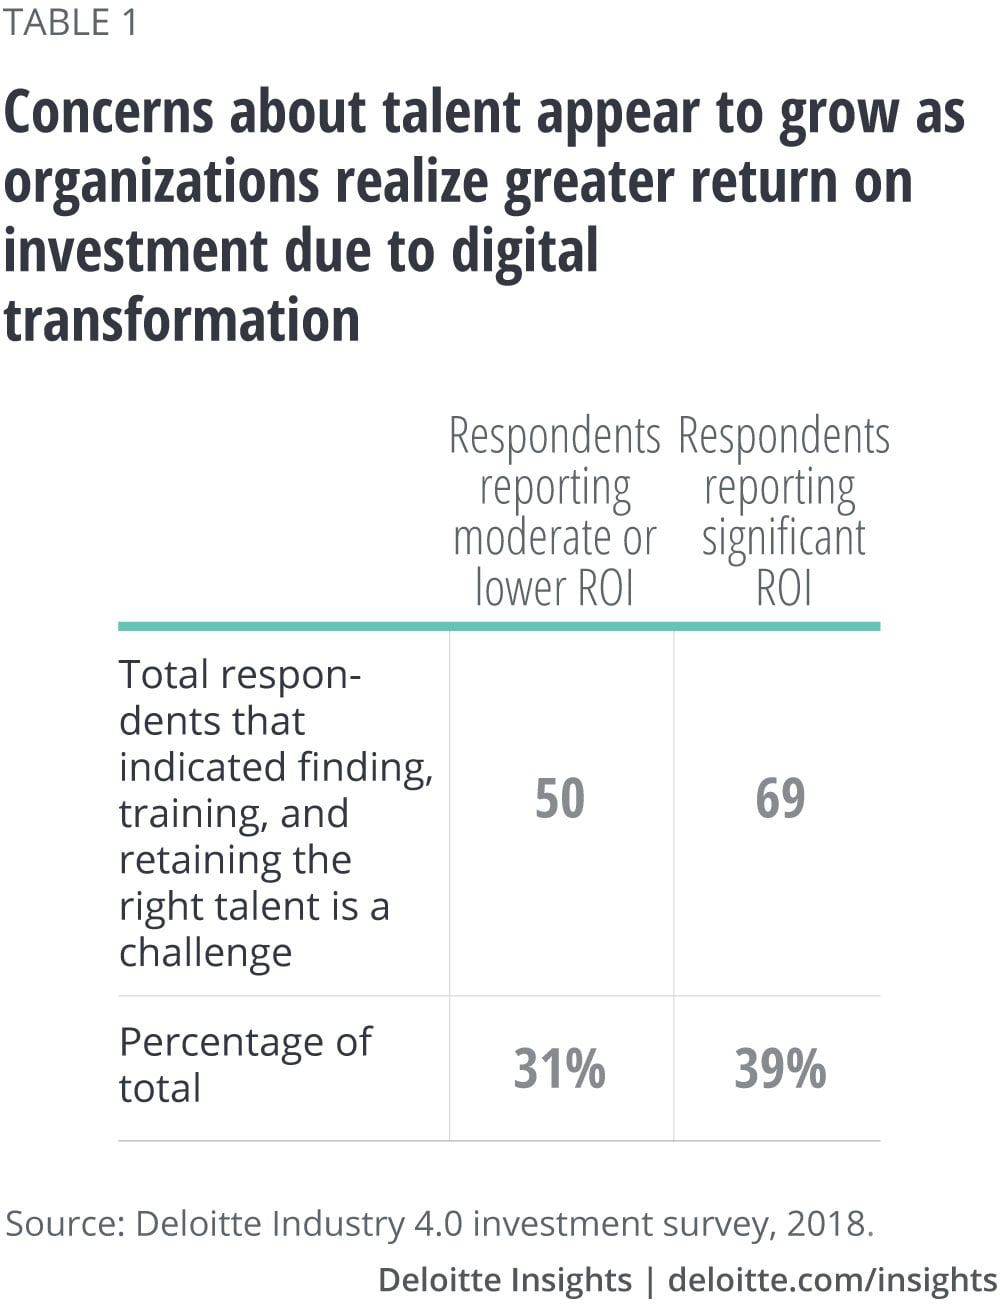 Concerns about talent appear to grow as organizations realize greater return on investment due to digital